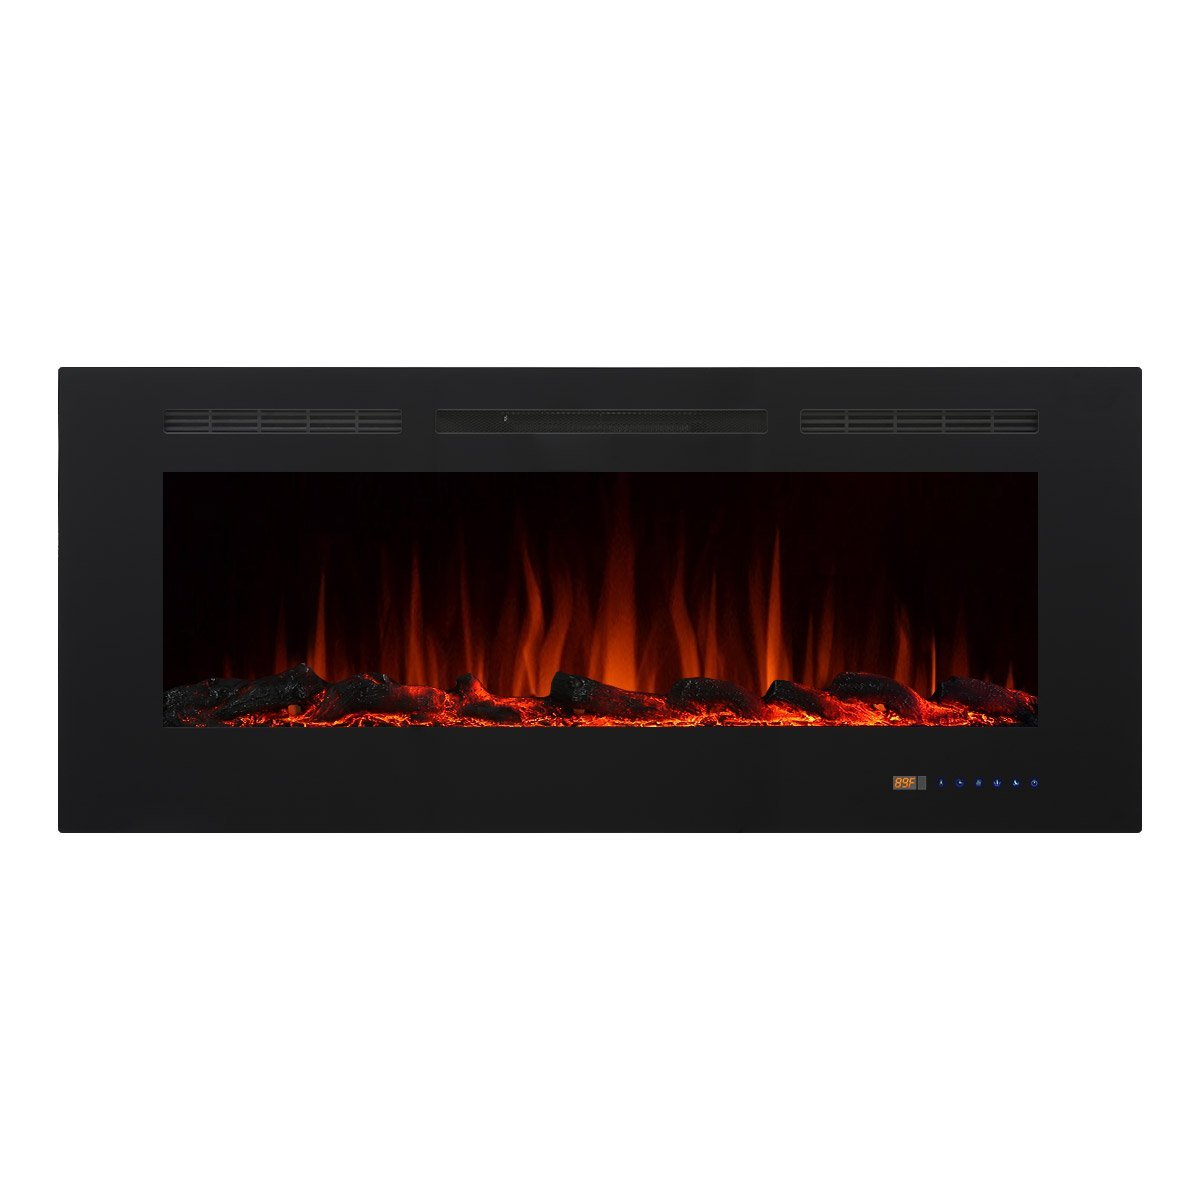 "Valuxhome Armanni 50"" 750W 1500W, In-Wall Recessed Electric Fireplace Heater w  Touch... by Valuxhome"